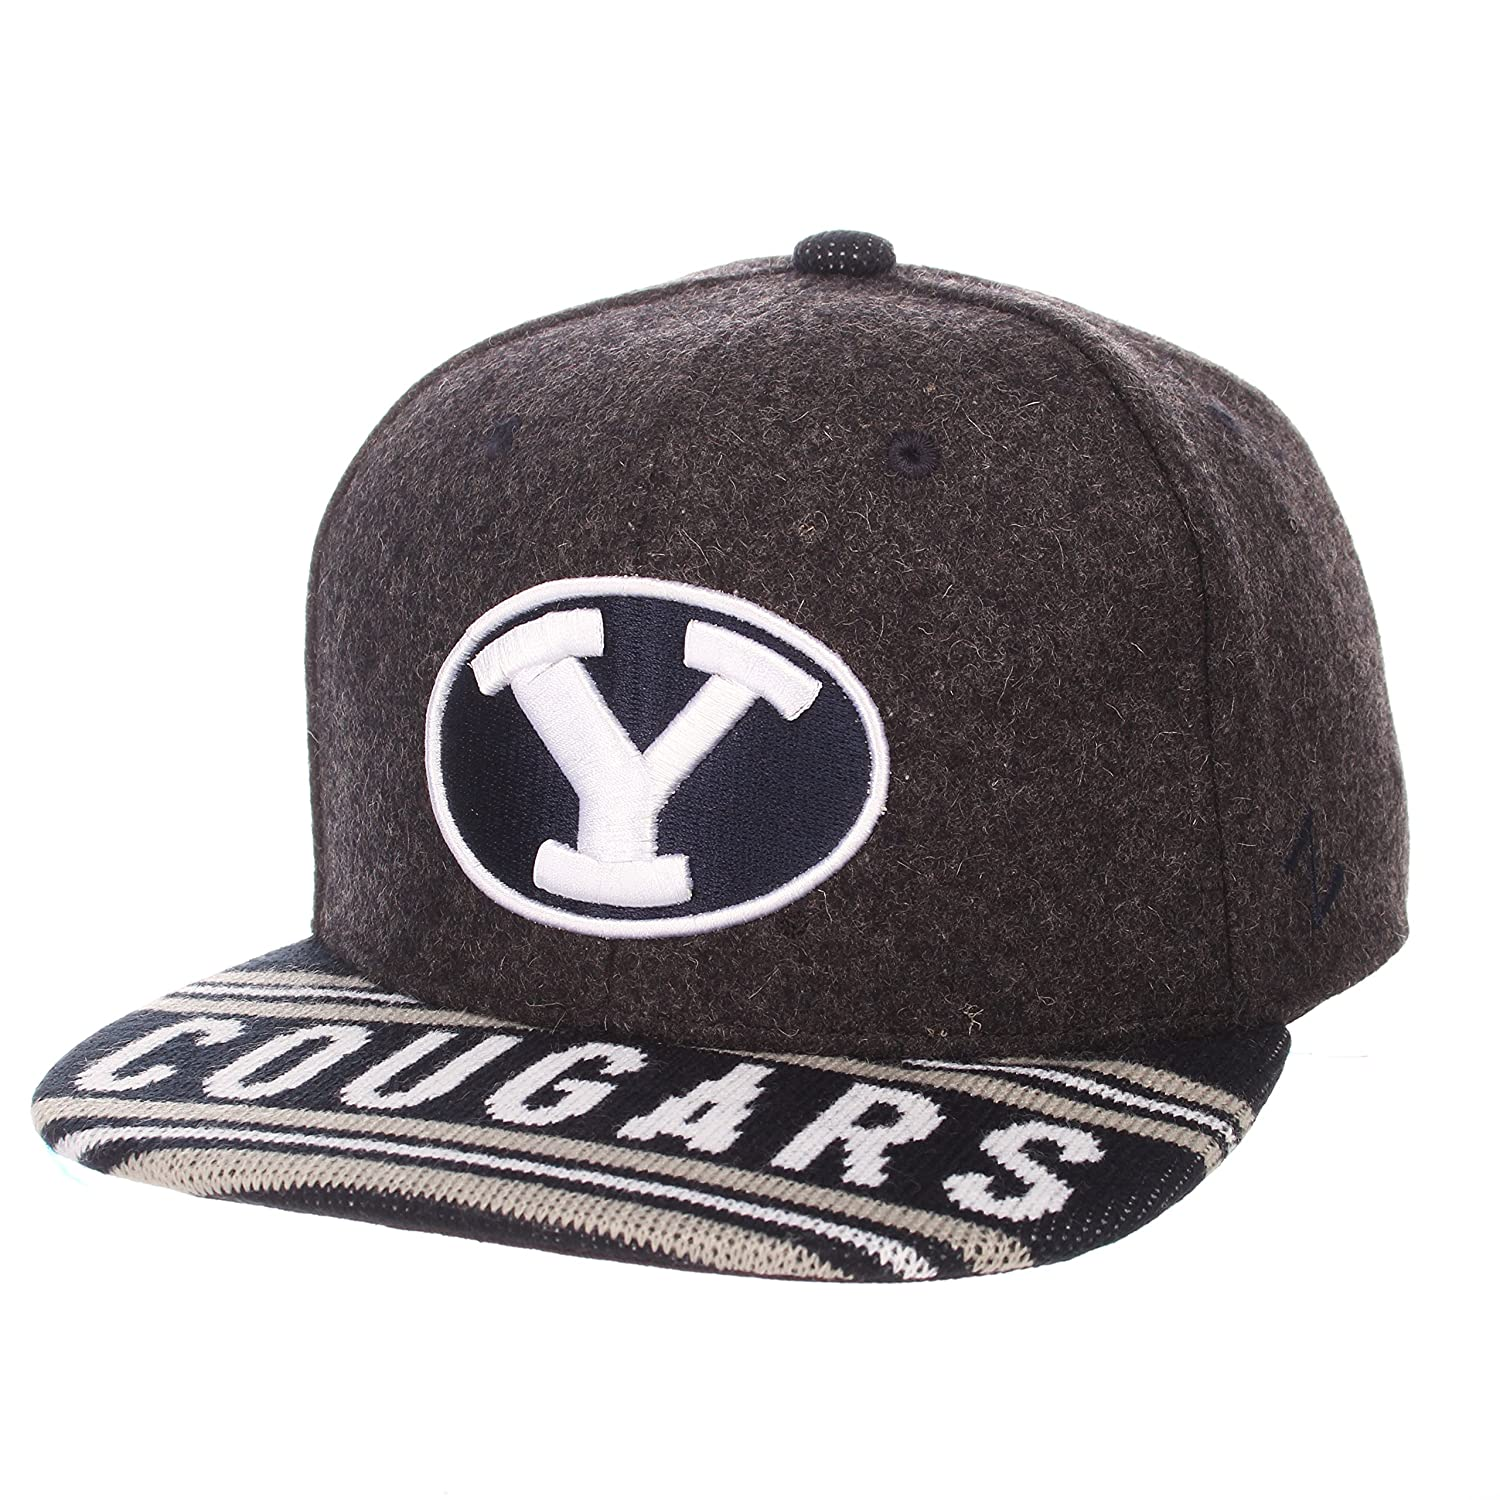 Adjustable Grey//Team Color Zephyr Adult Men End Zone Snap NCAA Snapback Hat